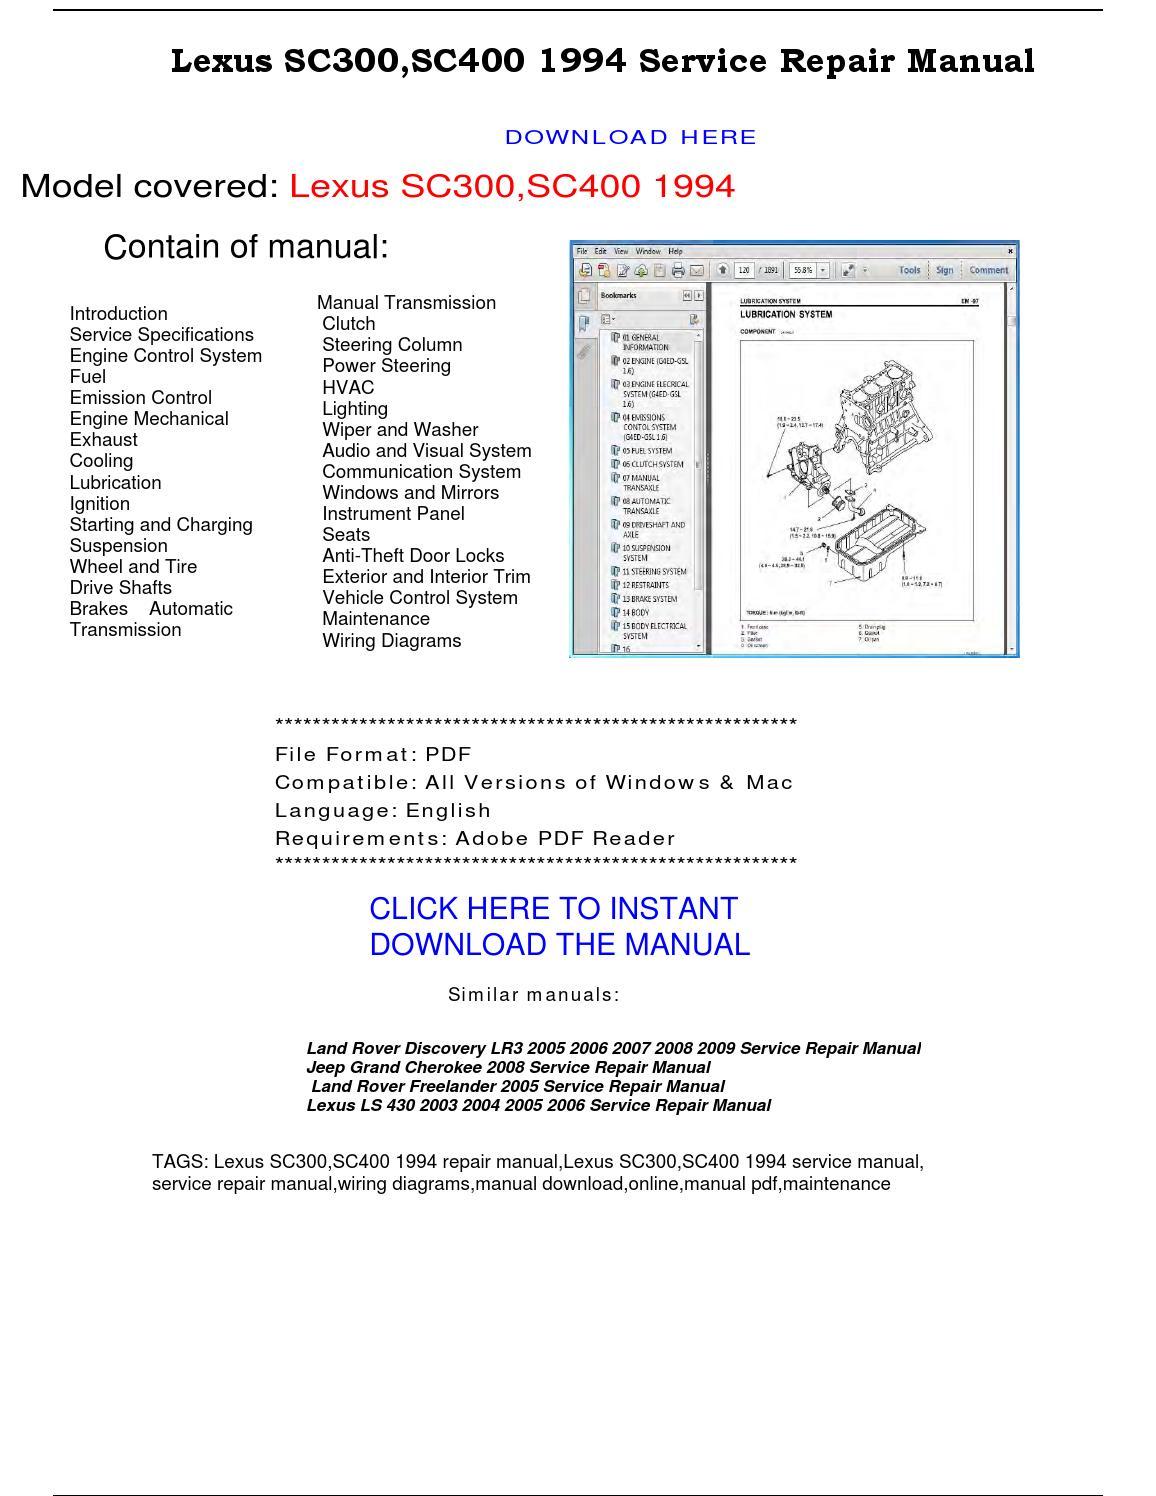 Lexus Sc300 Sc400 1994 Service Repair Manual By